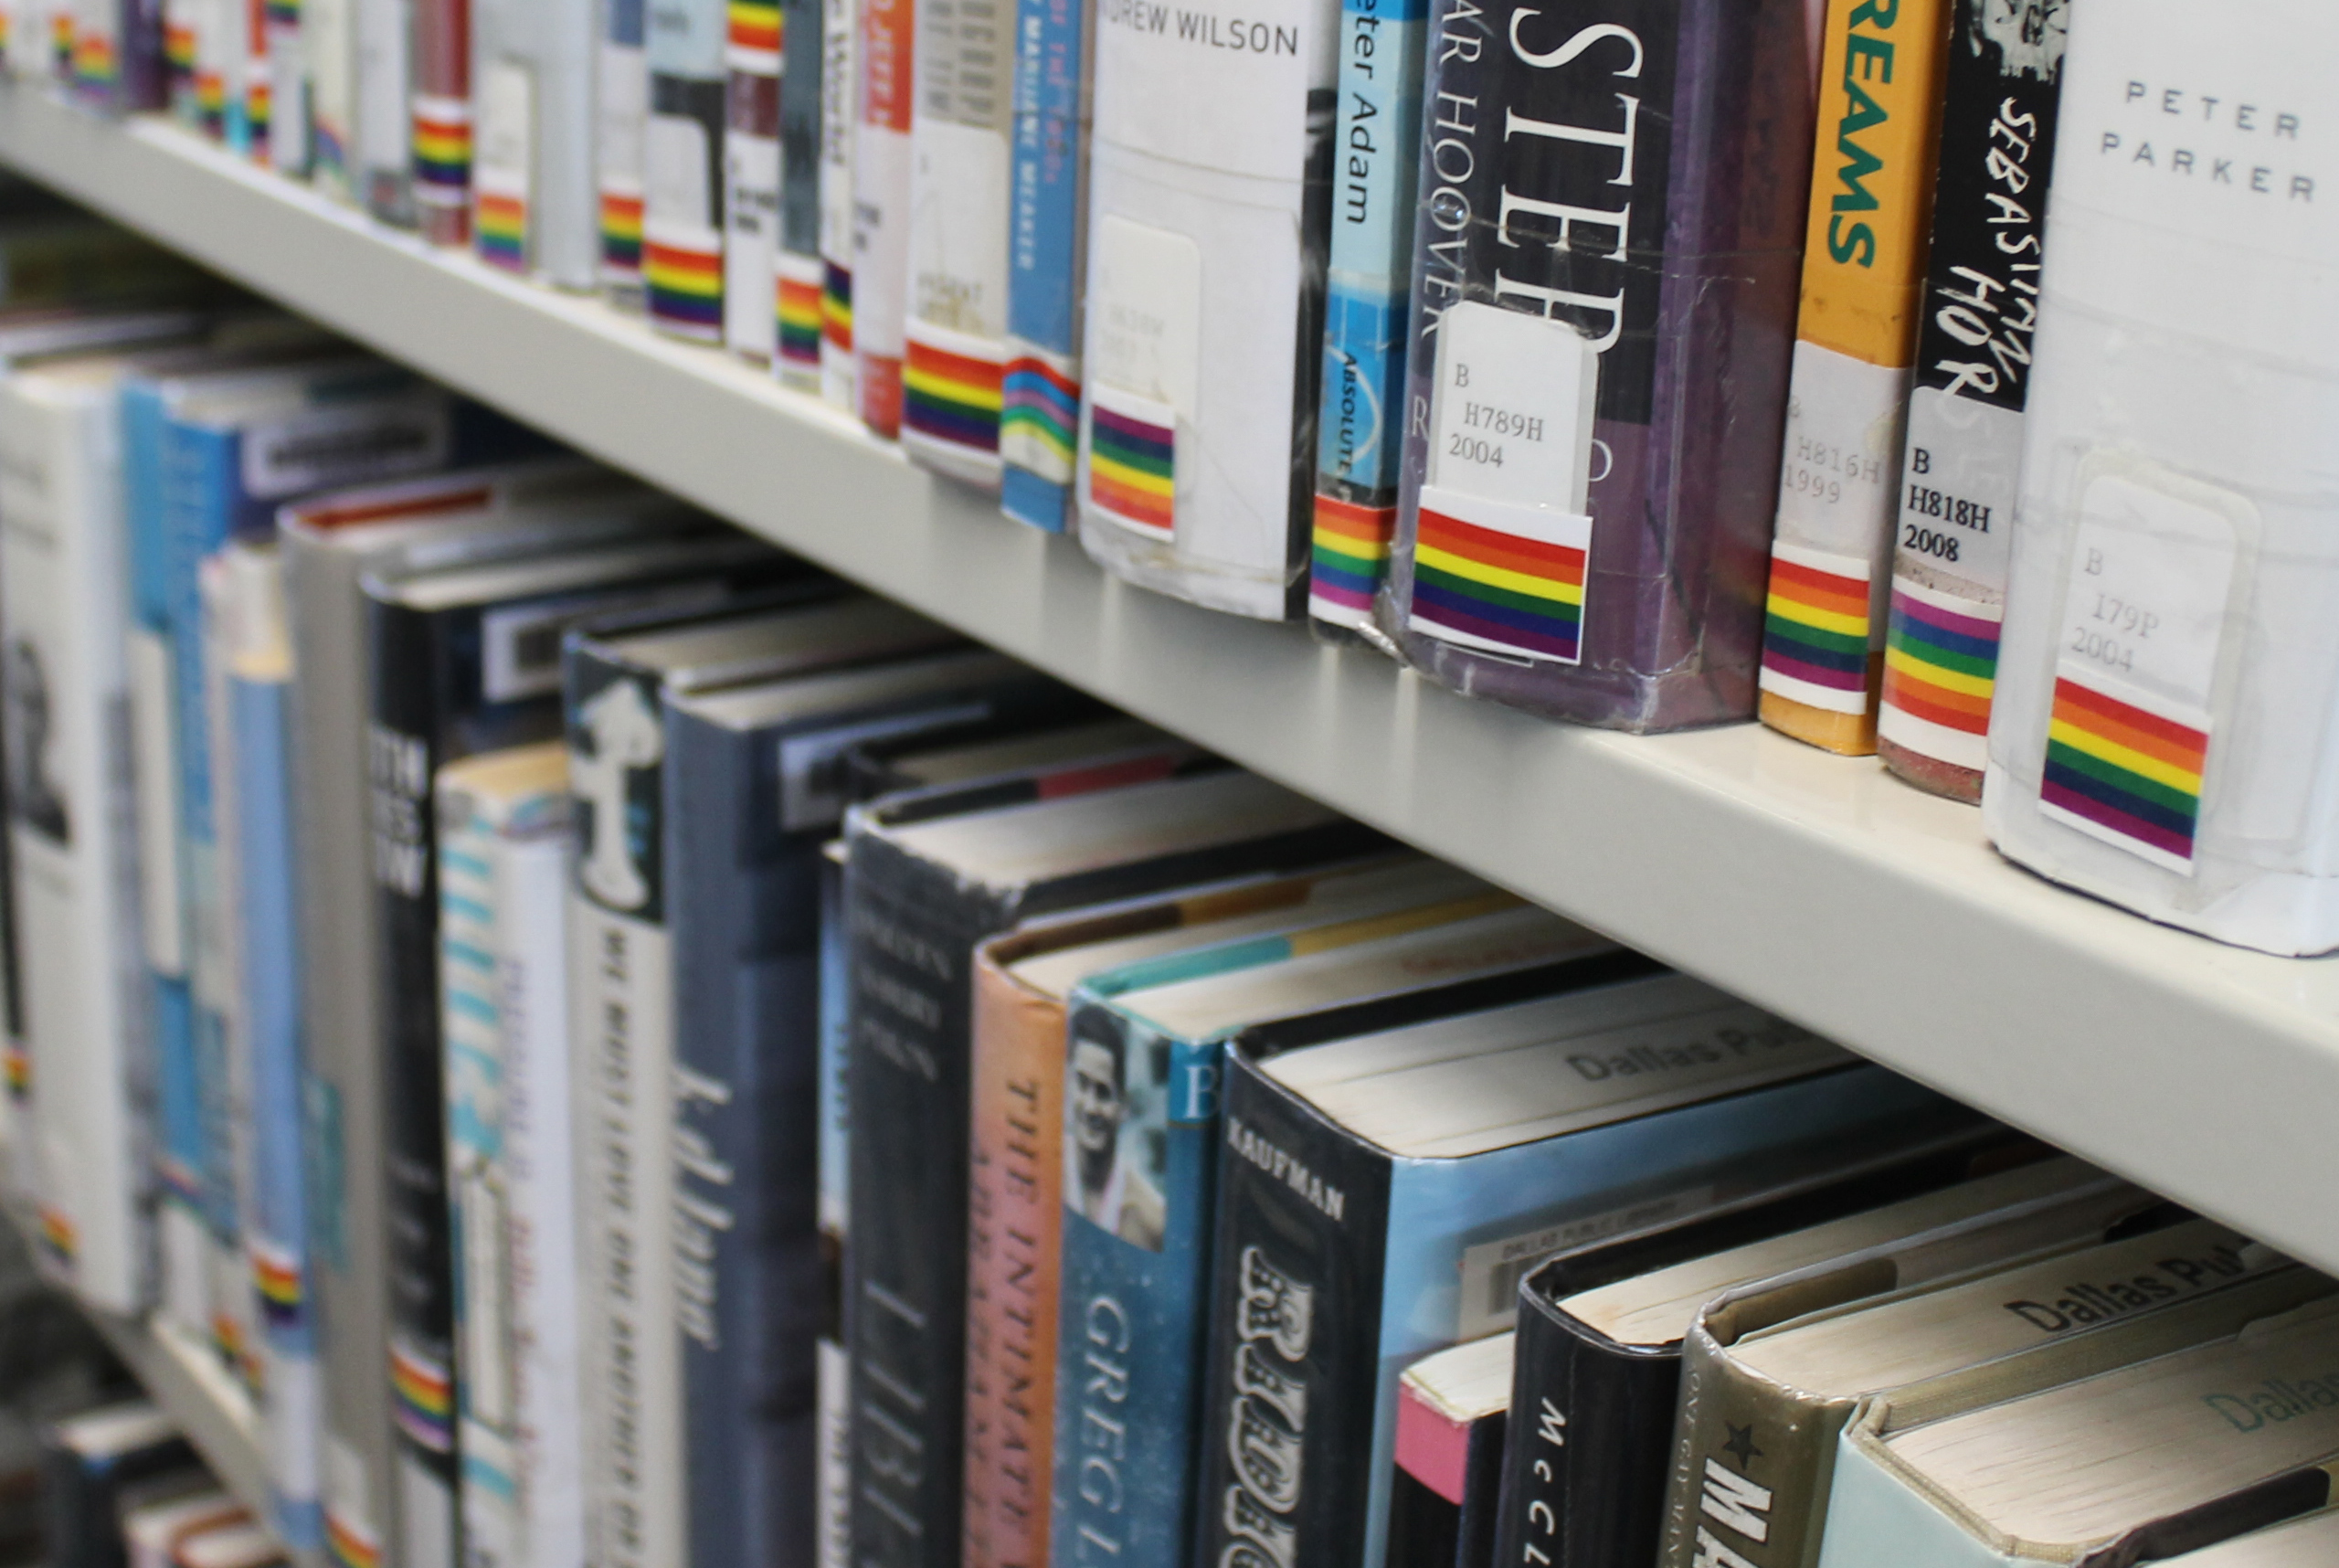 Dallas librarian who helped choose Stonewall book award winners to speak